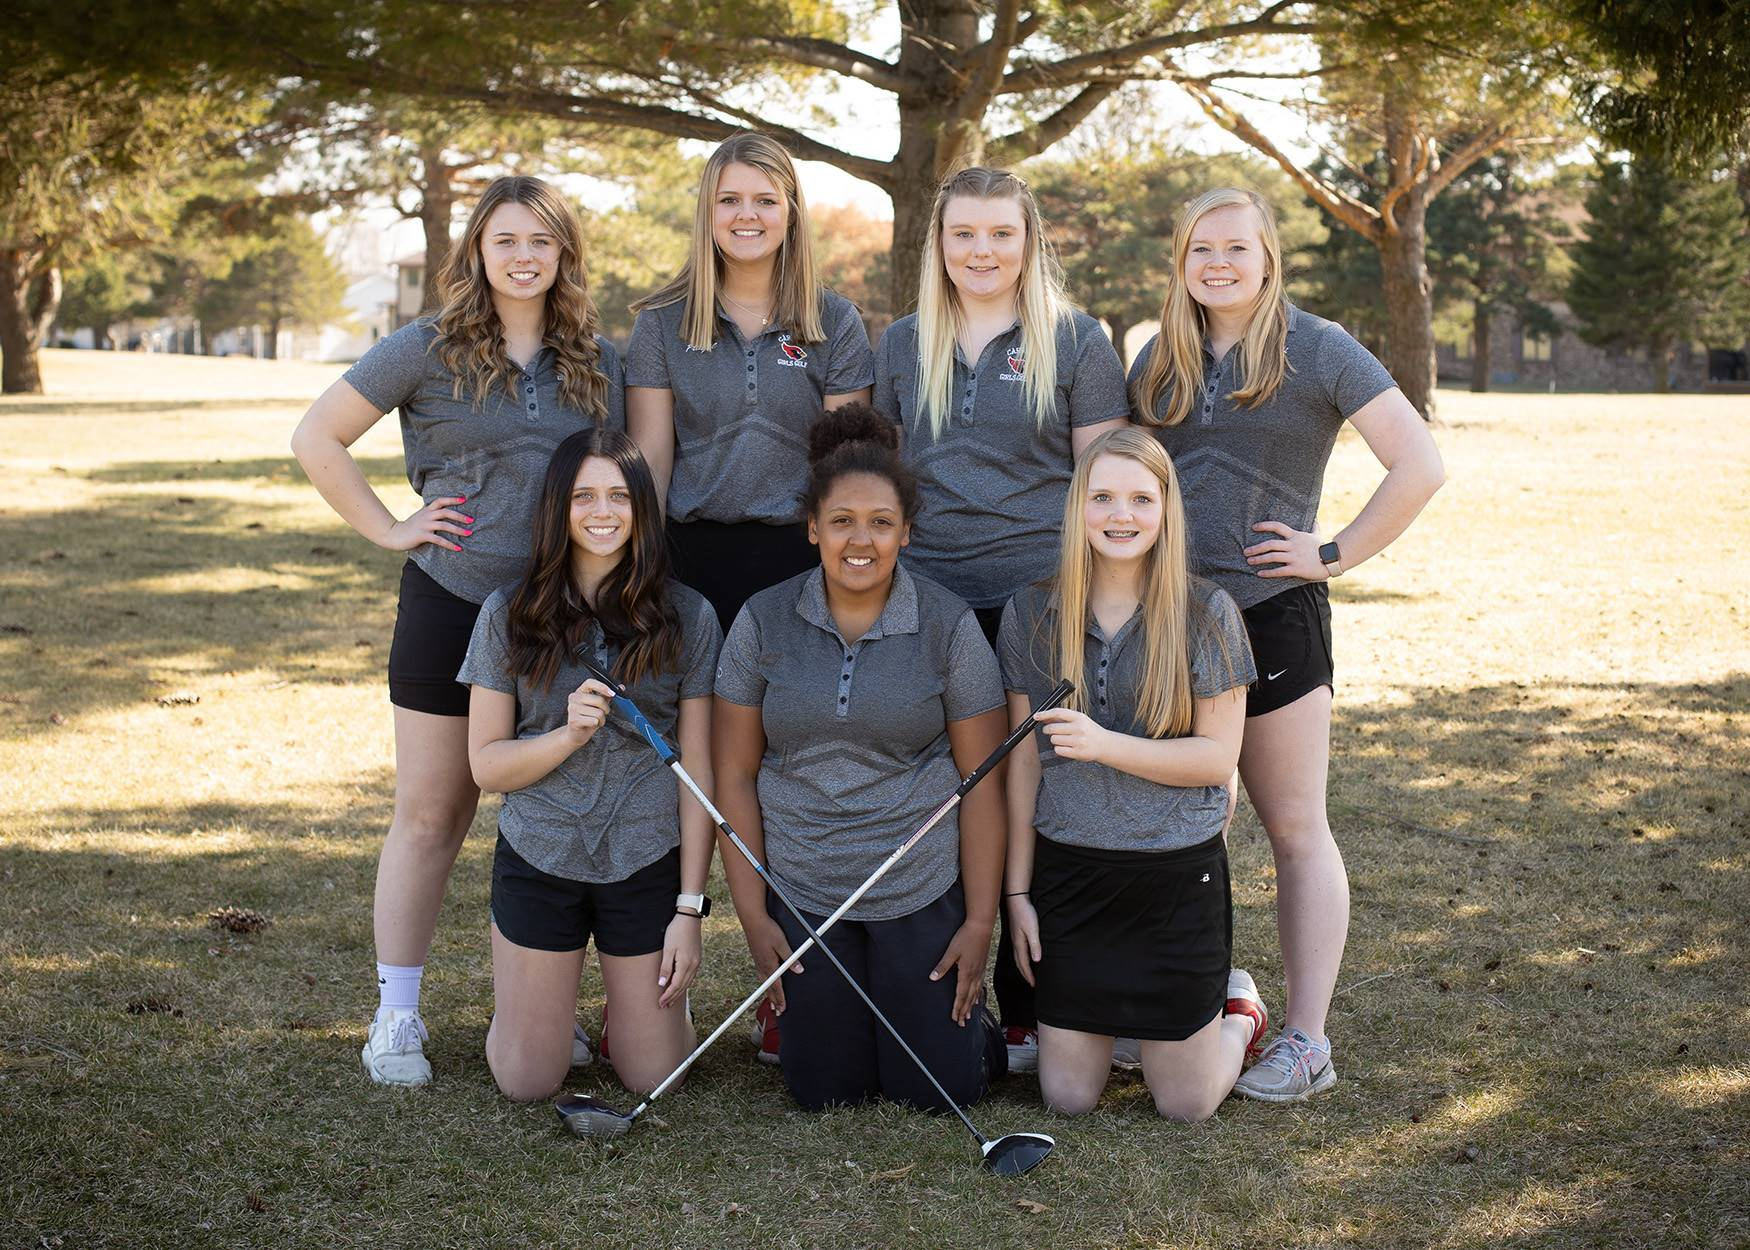 Girls golf team posing for a photo